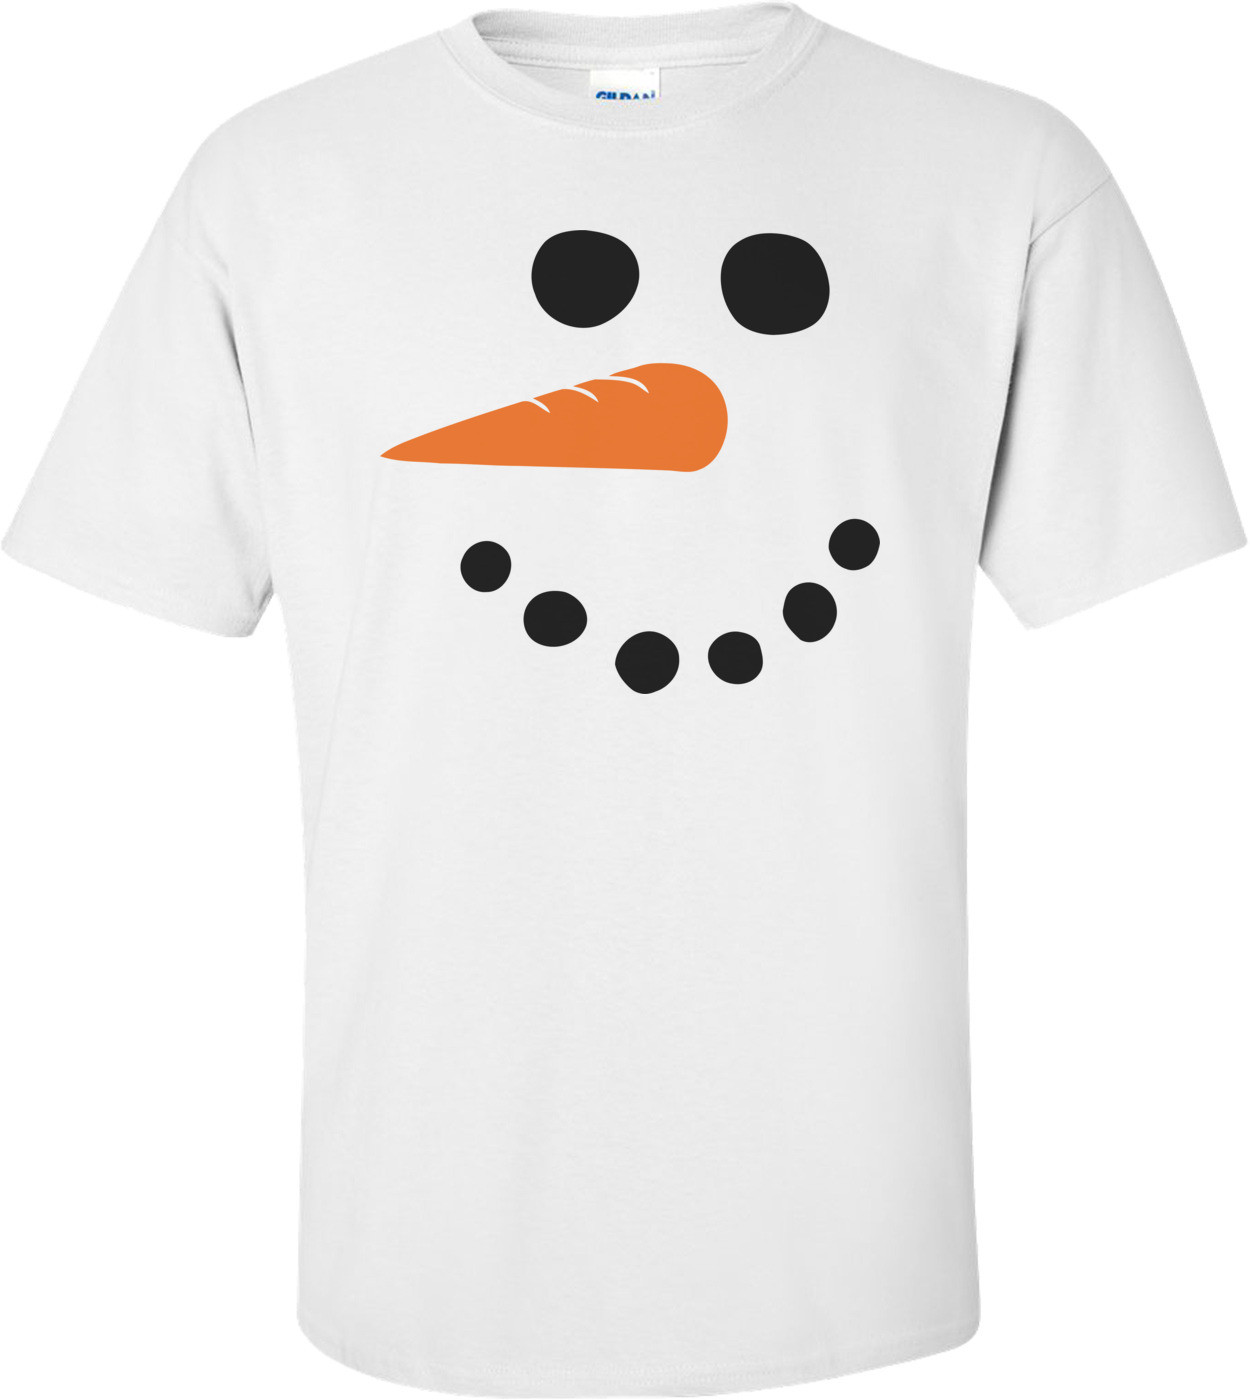 Funny And Cute Snowman T-shirt